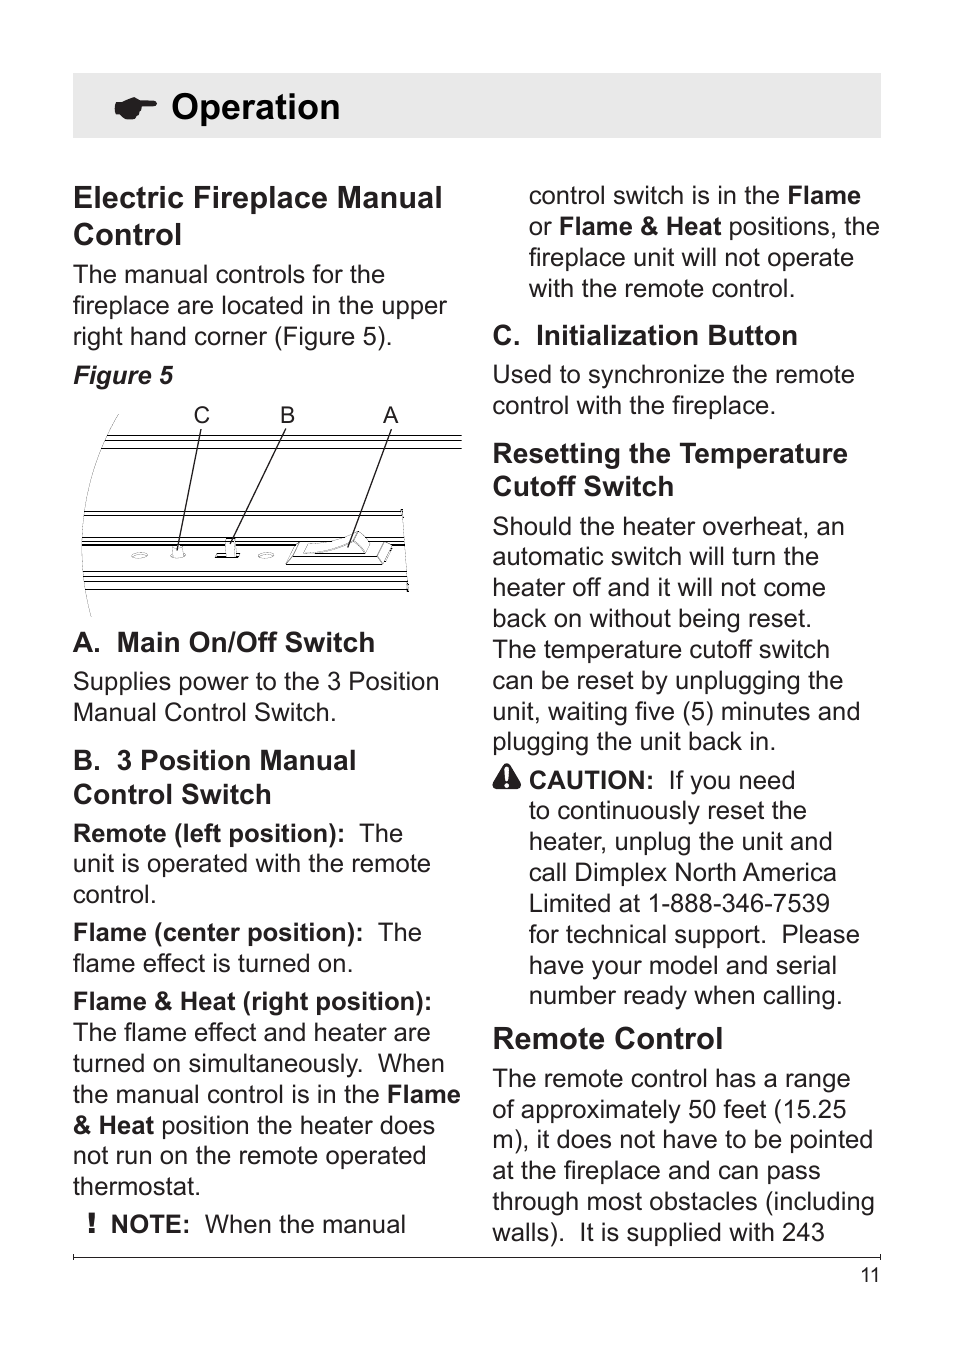 Operation  Electric Fireplace Manual Control  Remote Control